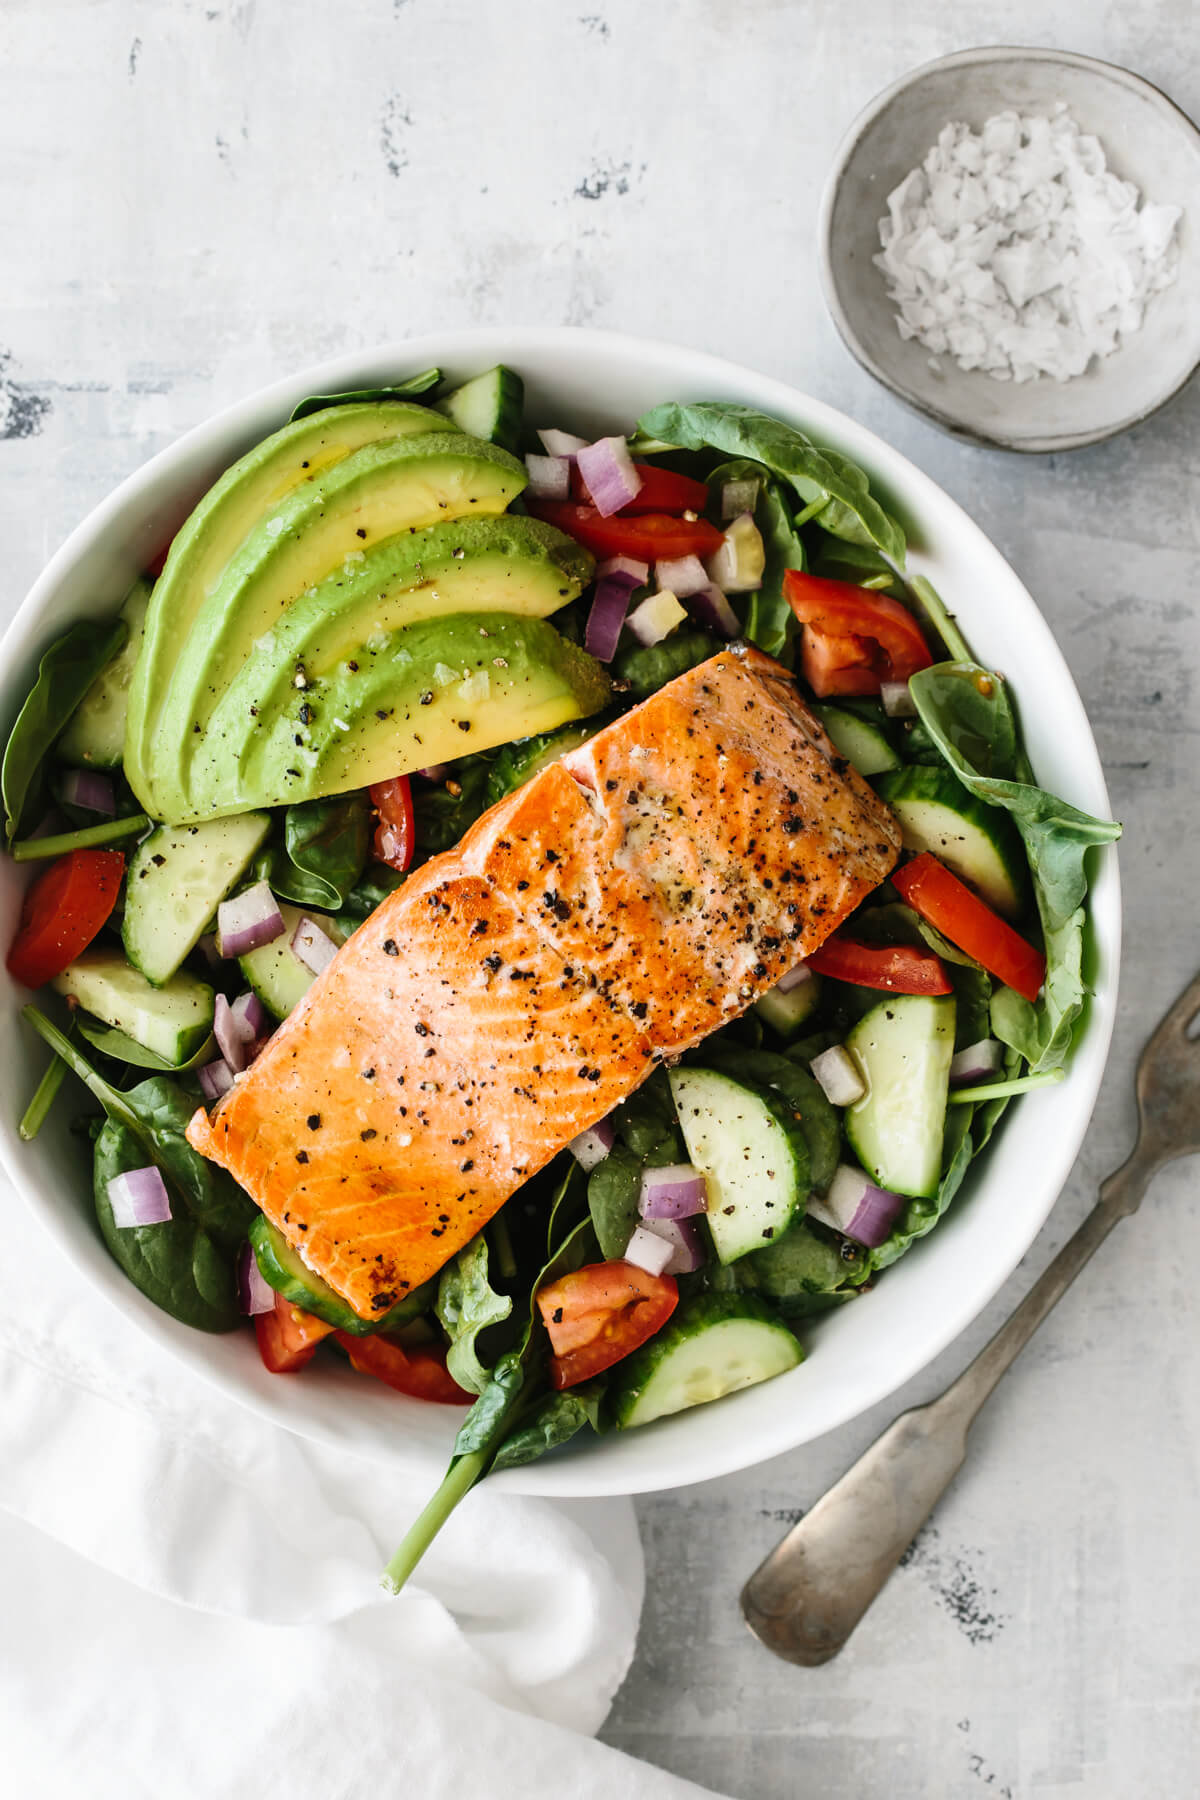 Single salmon fillet on top of salad with avocado and salt pinch bowl off to the side.